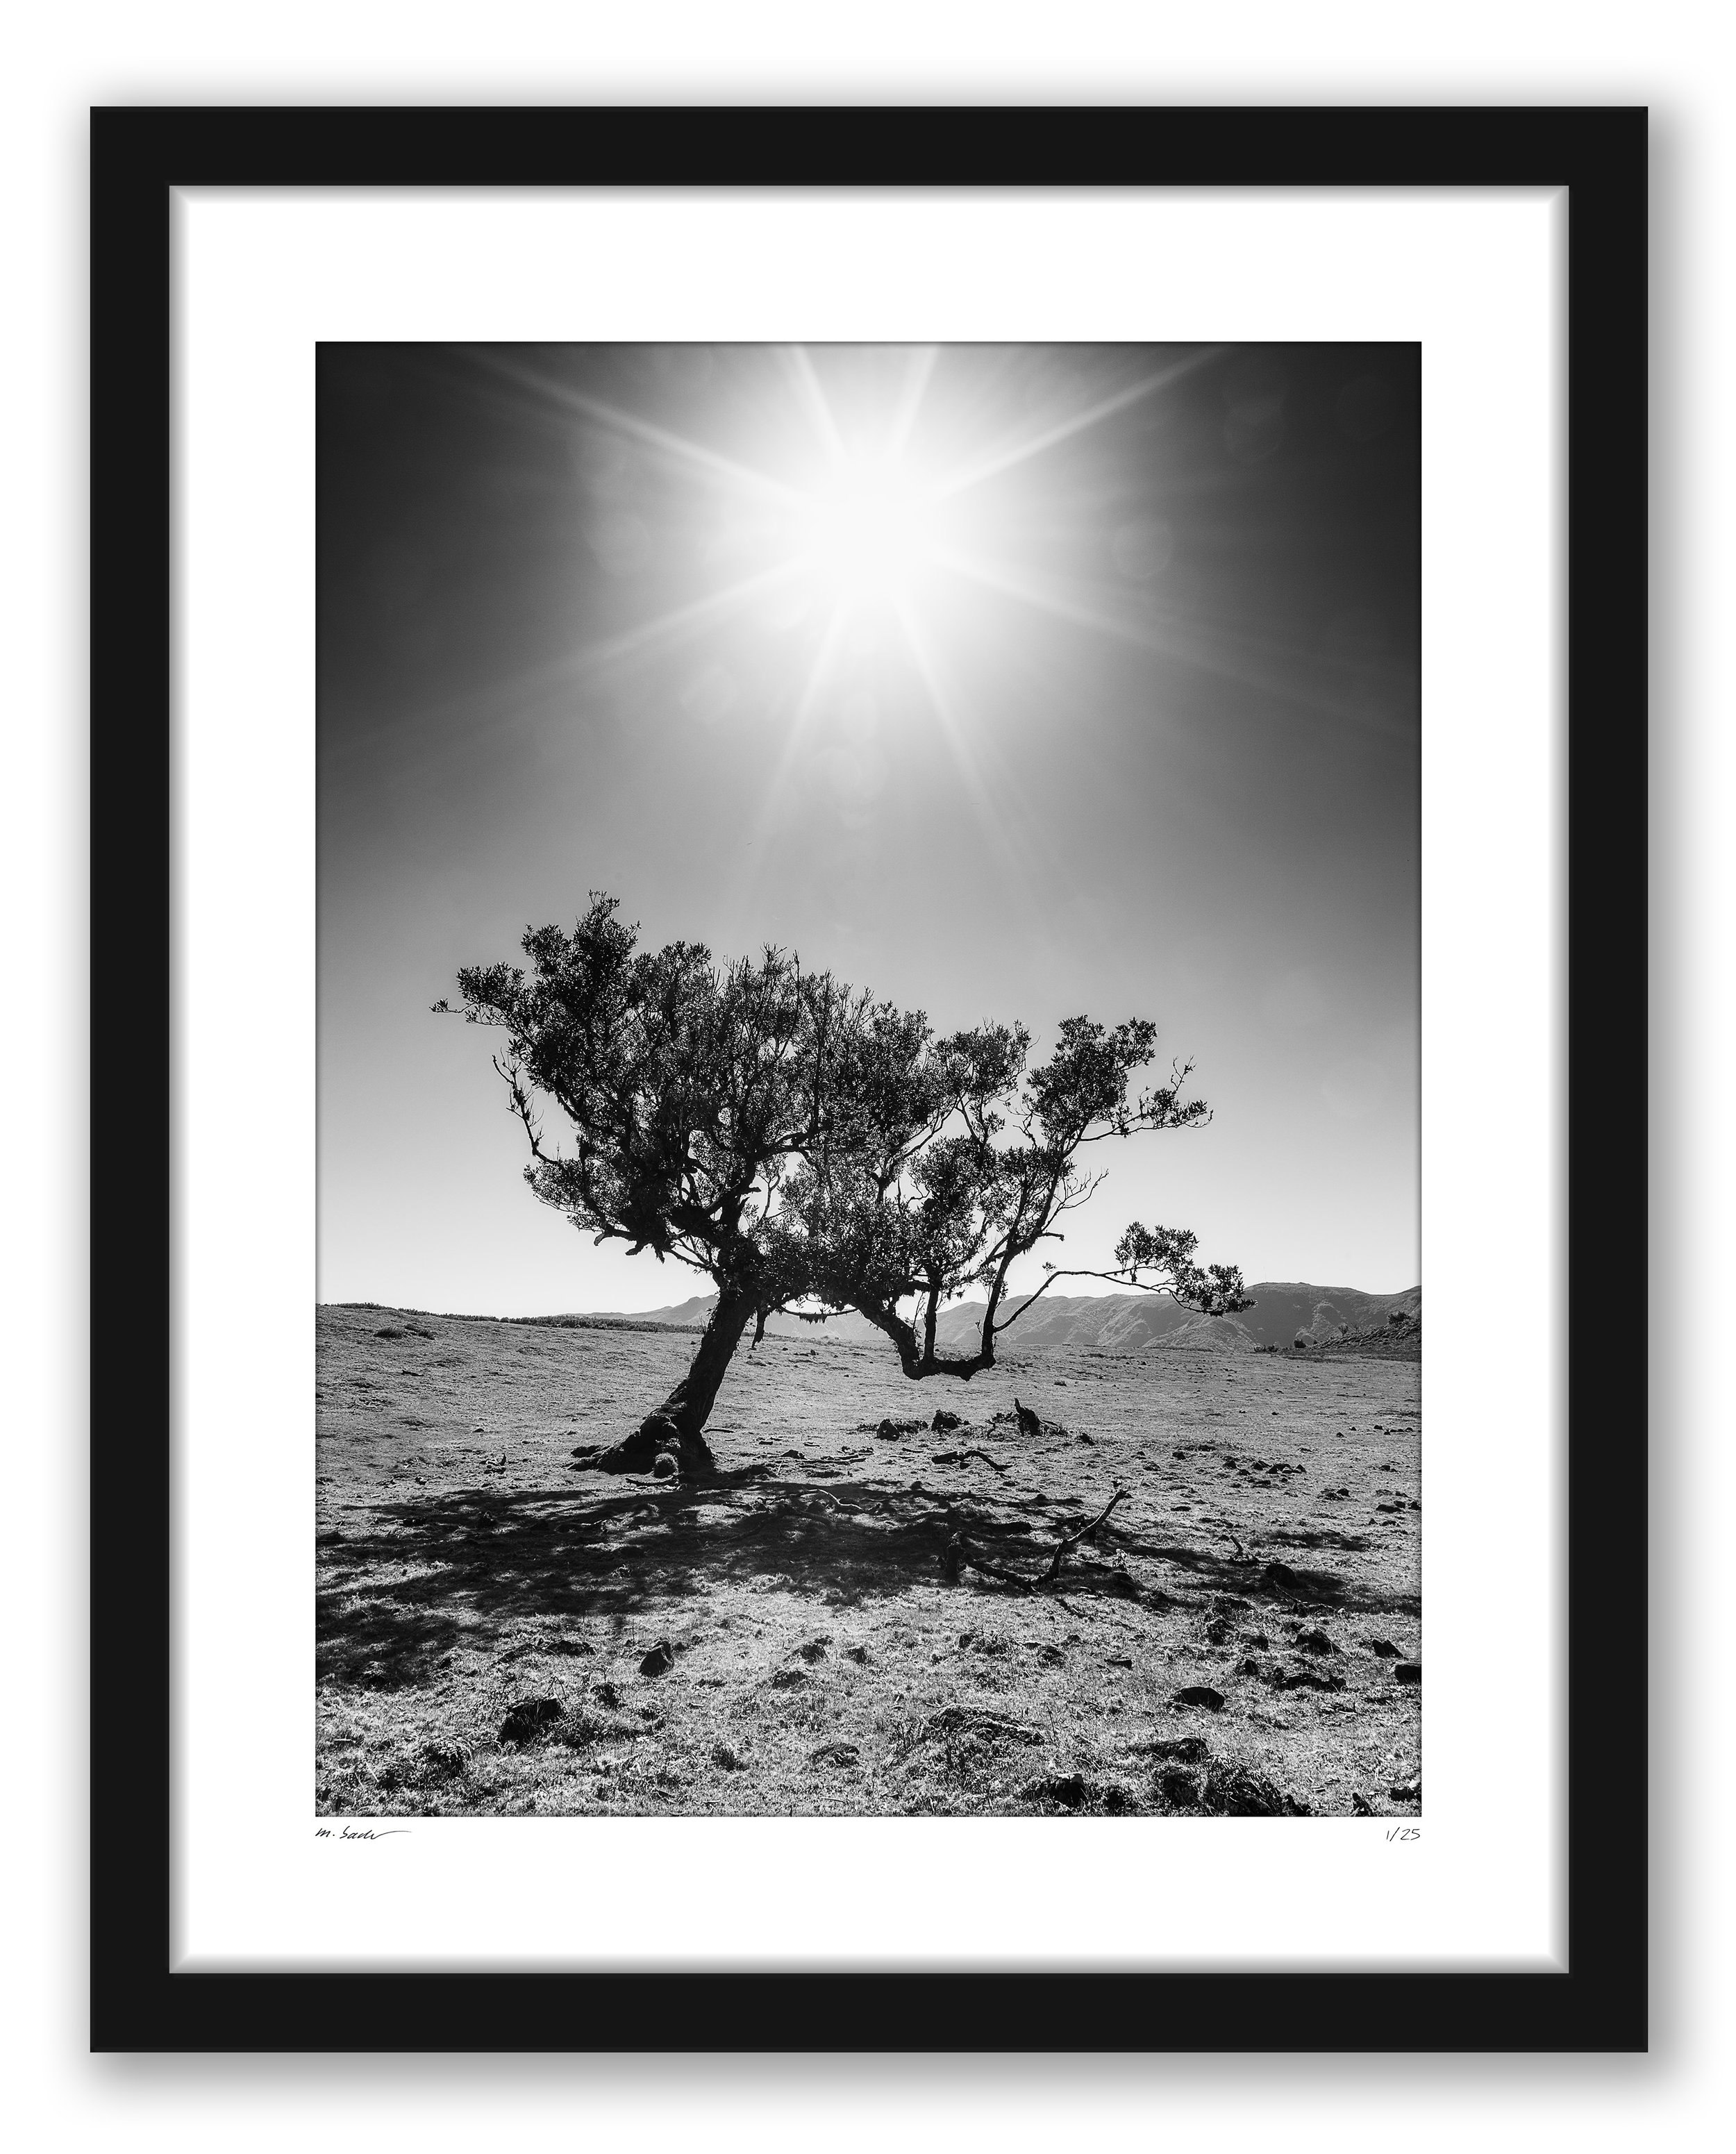 LIMITED-EDITION-MADEIRA-SOLITAIRE-TREE_Image.jpg